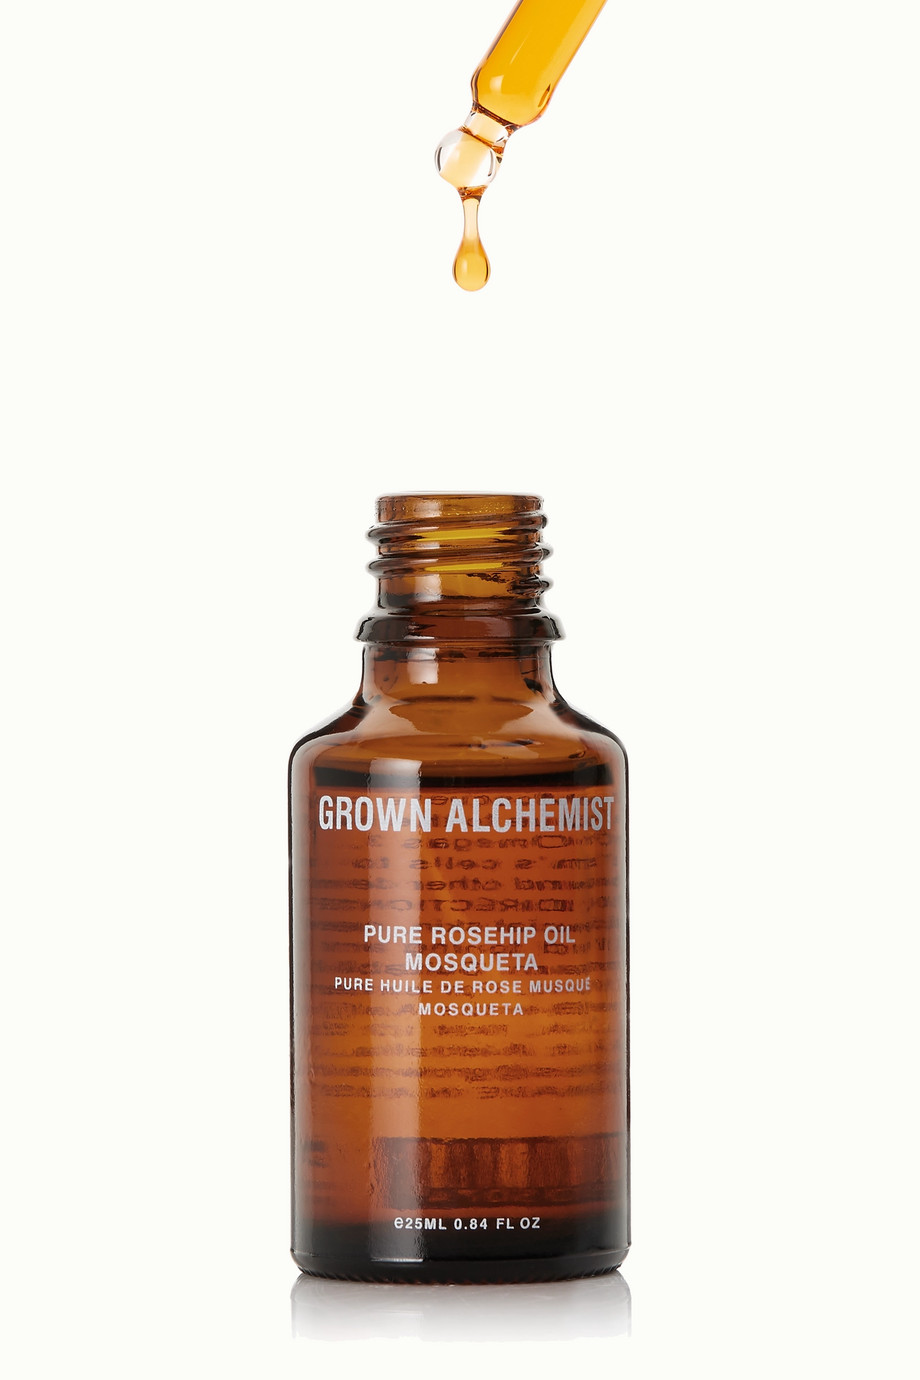 Grown Alchemist Pure Rosehip Oil Rosa Mosqueta, 25ml